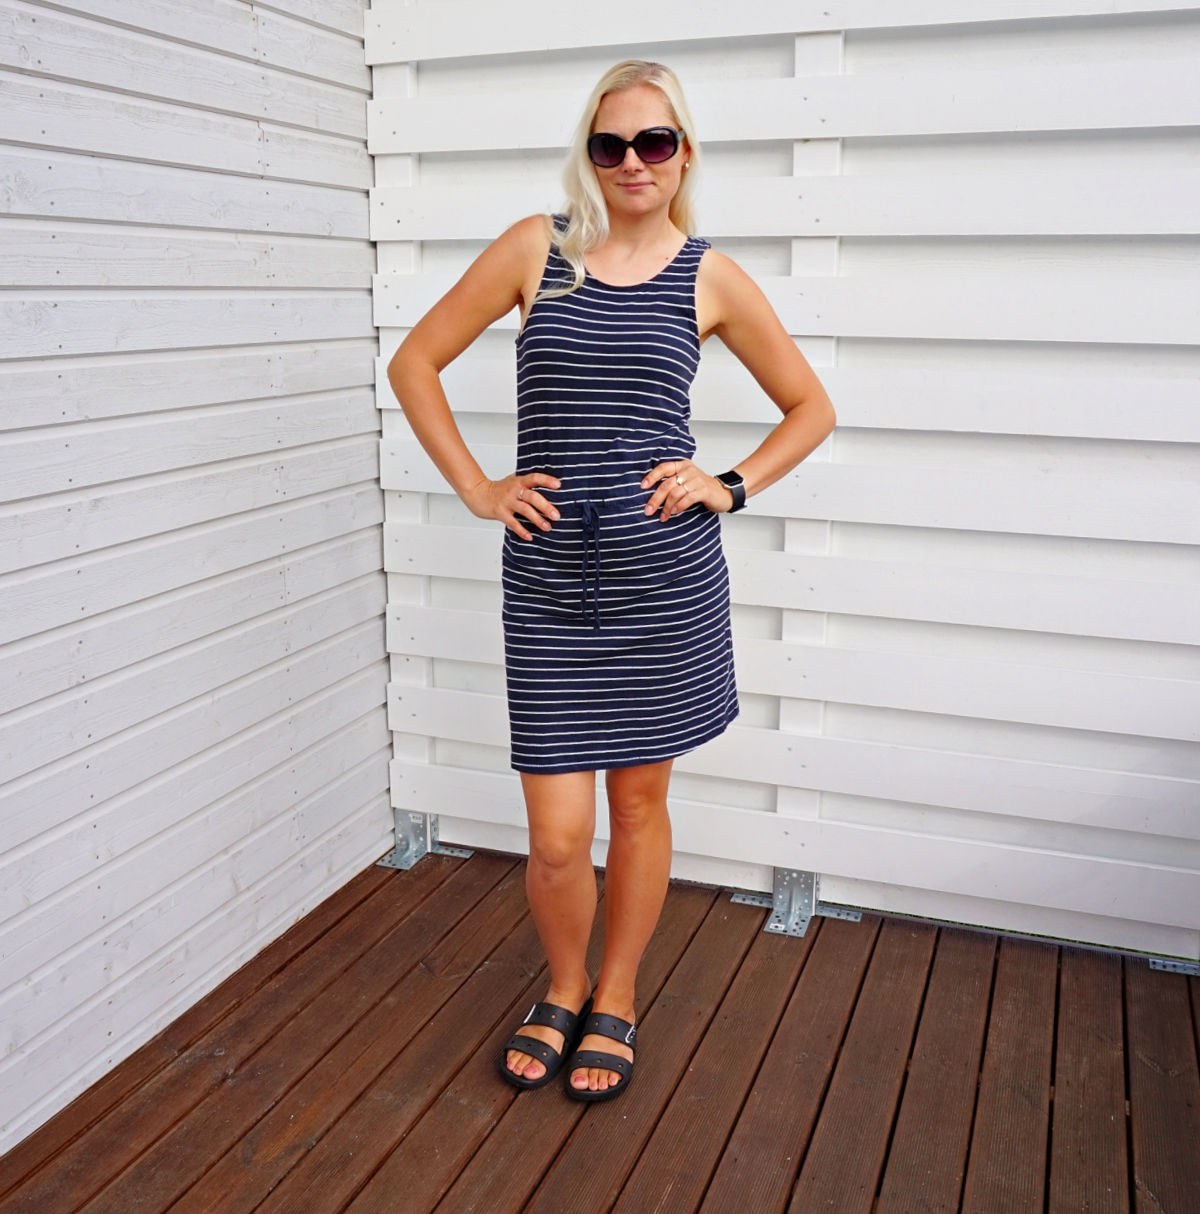 ONLY Womens May Sleeveless Stripe Dress and Classic Crocs sandals